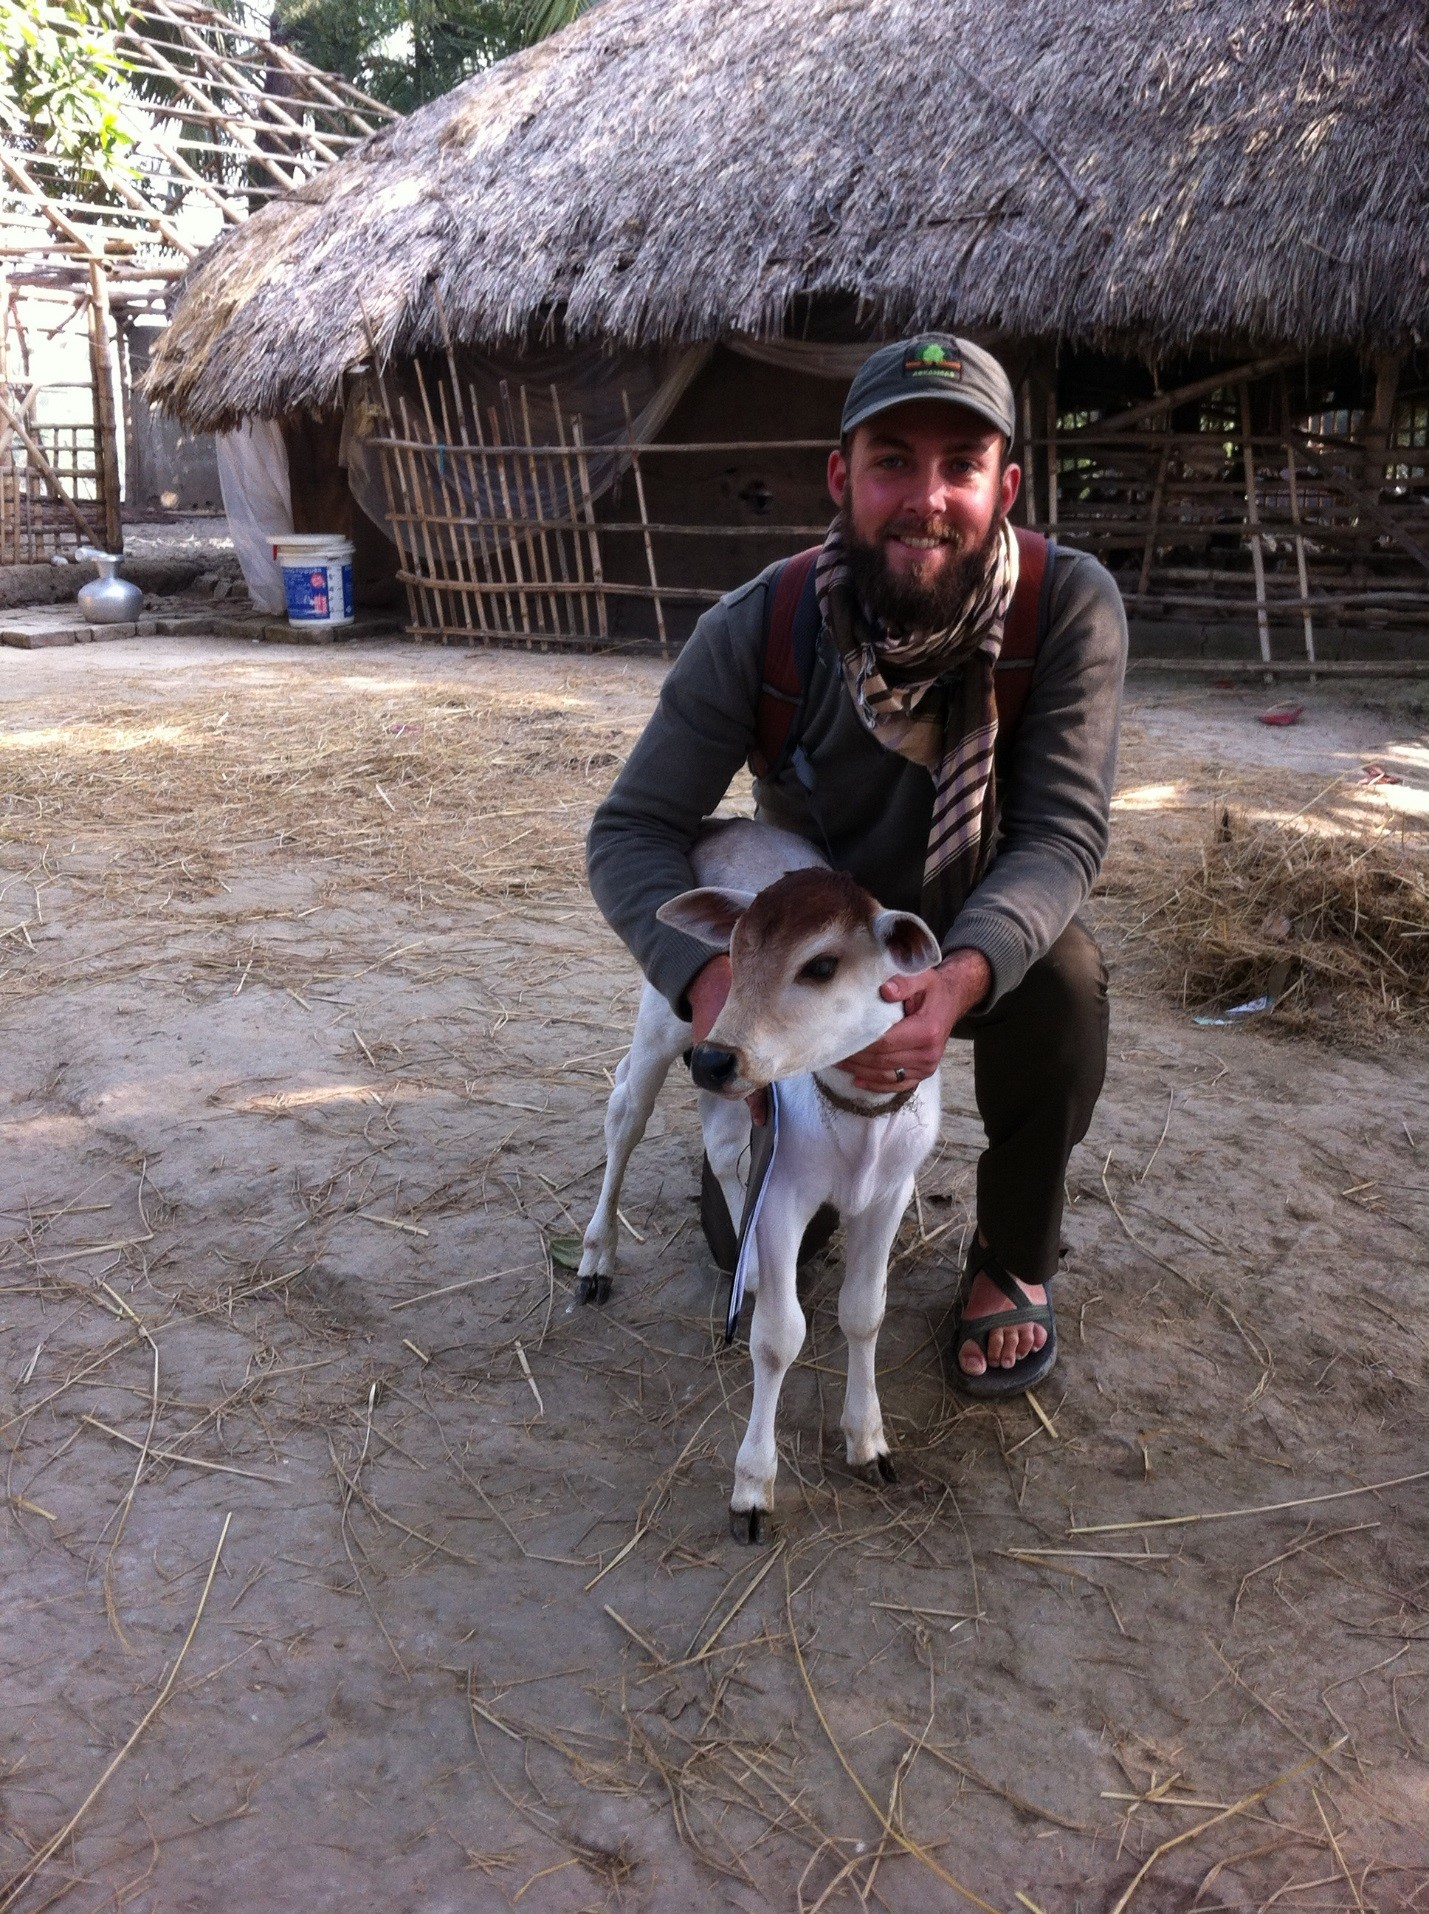 Aaron Shew outside with calf